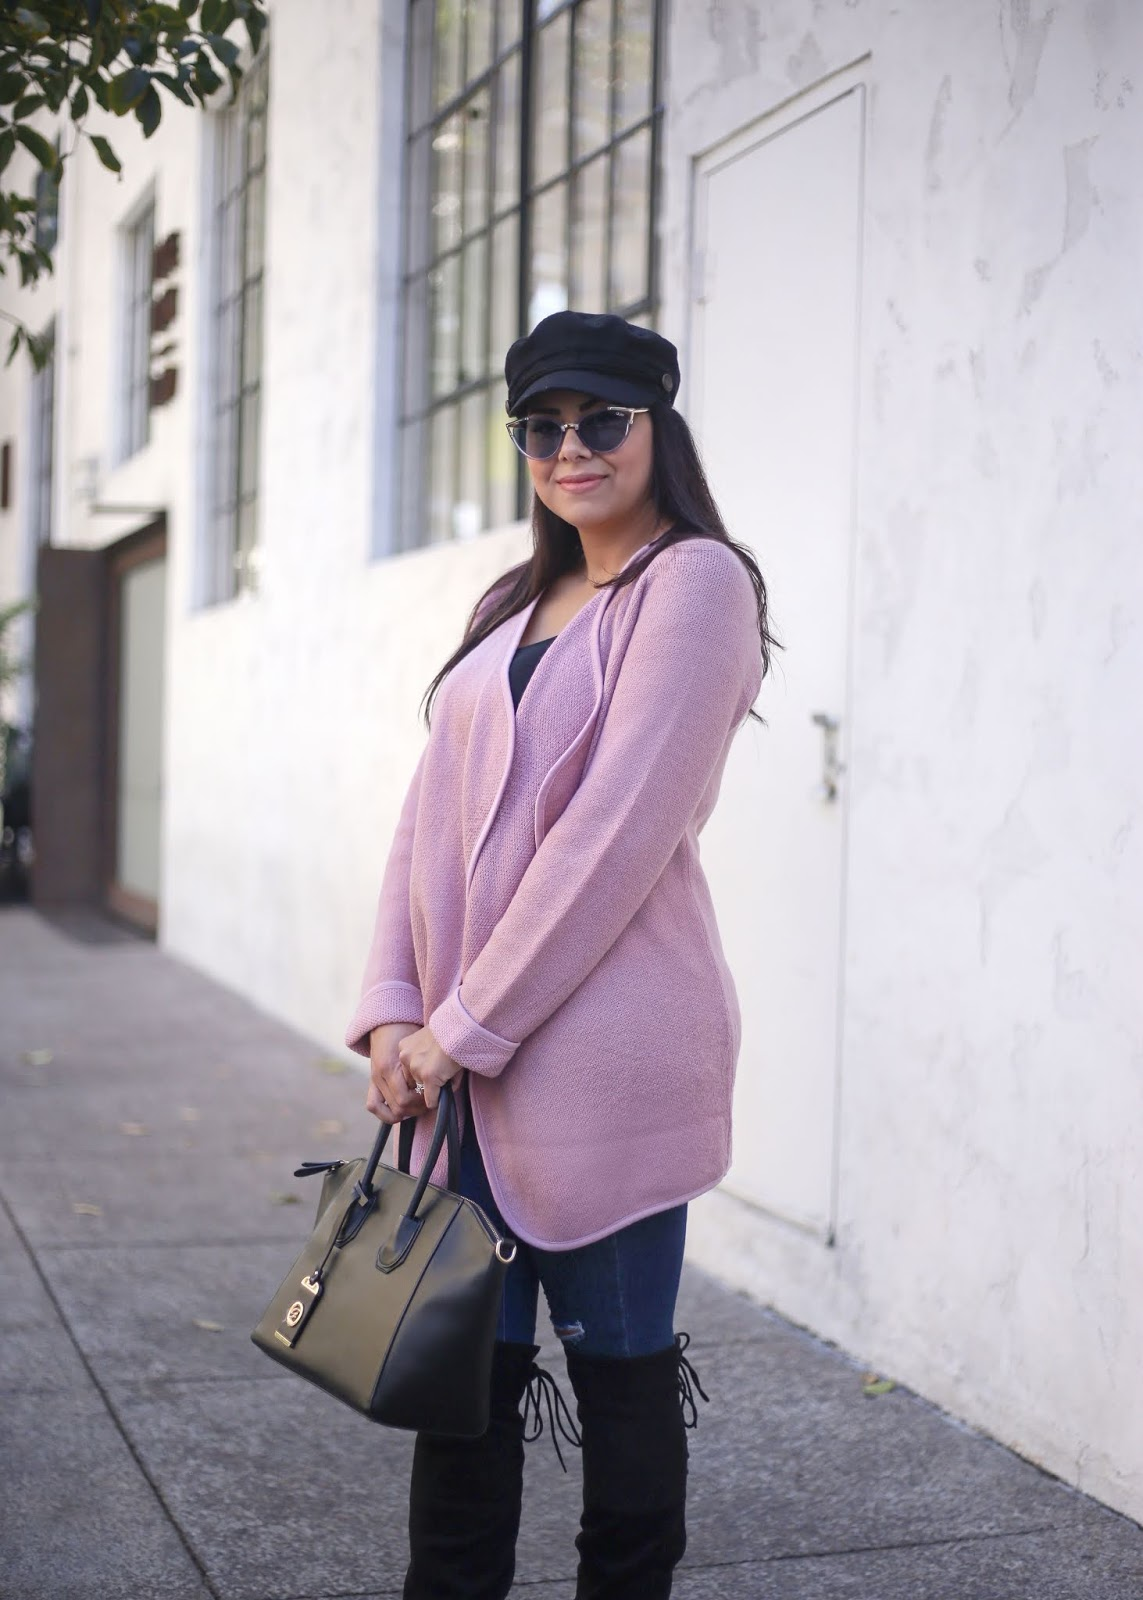 San Diego Fashion Blogger Fall 2018, San Diego Fashion Blogger Fall Fashion